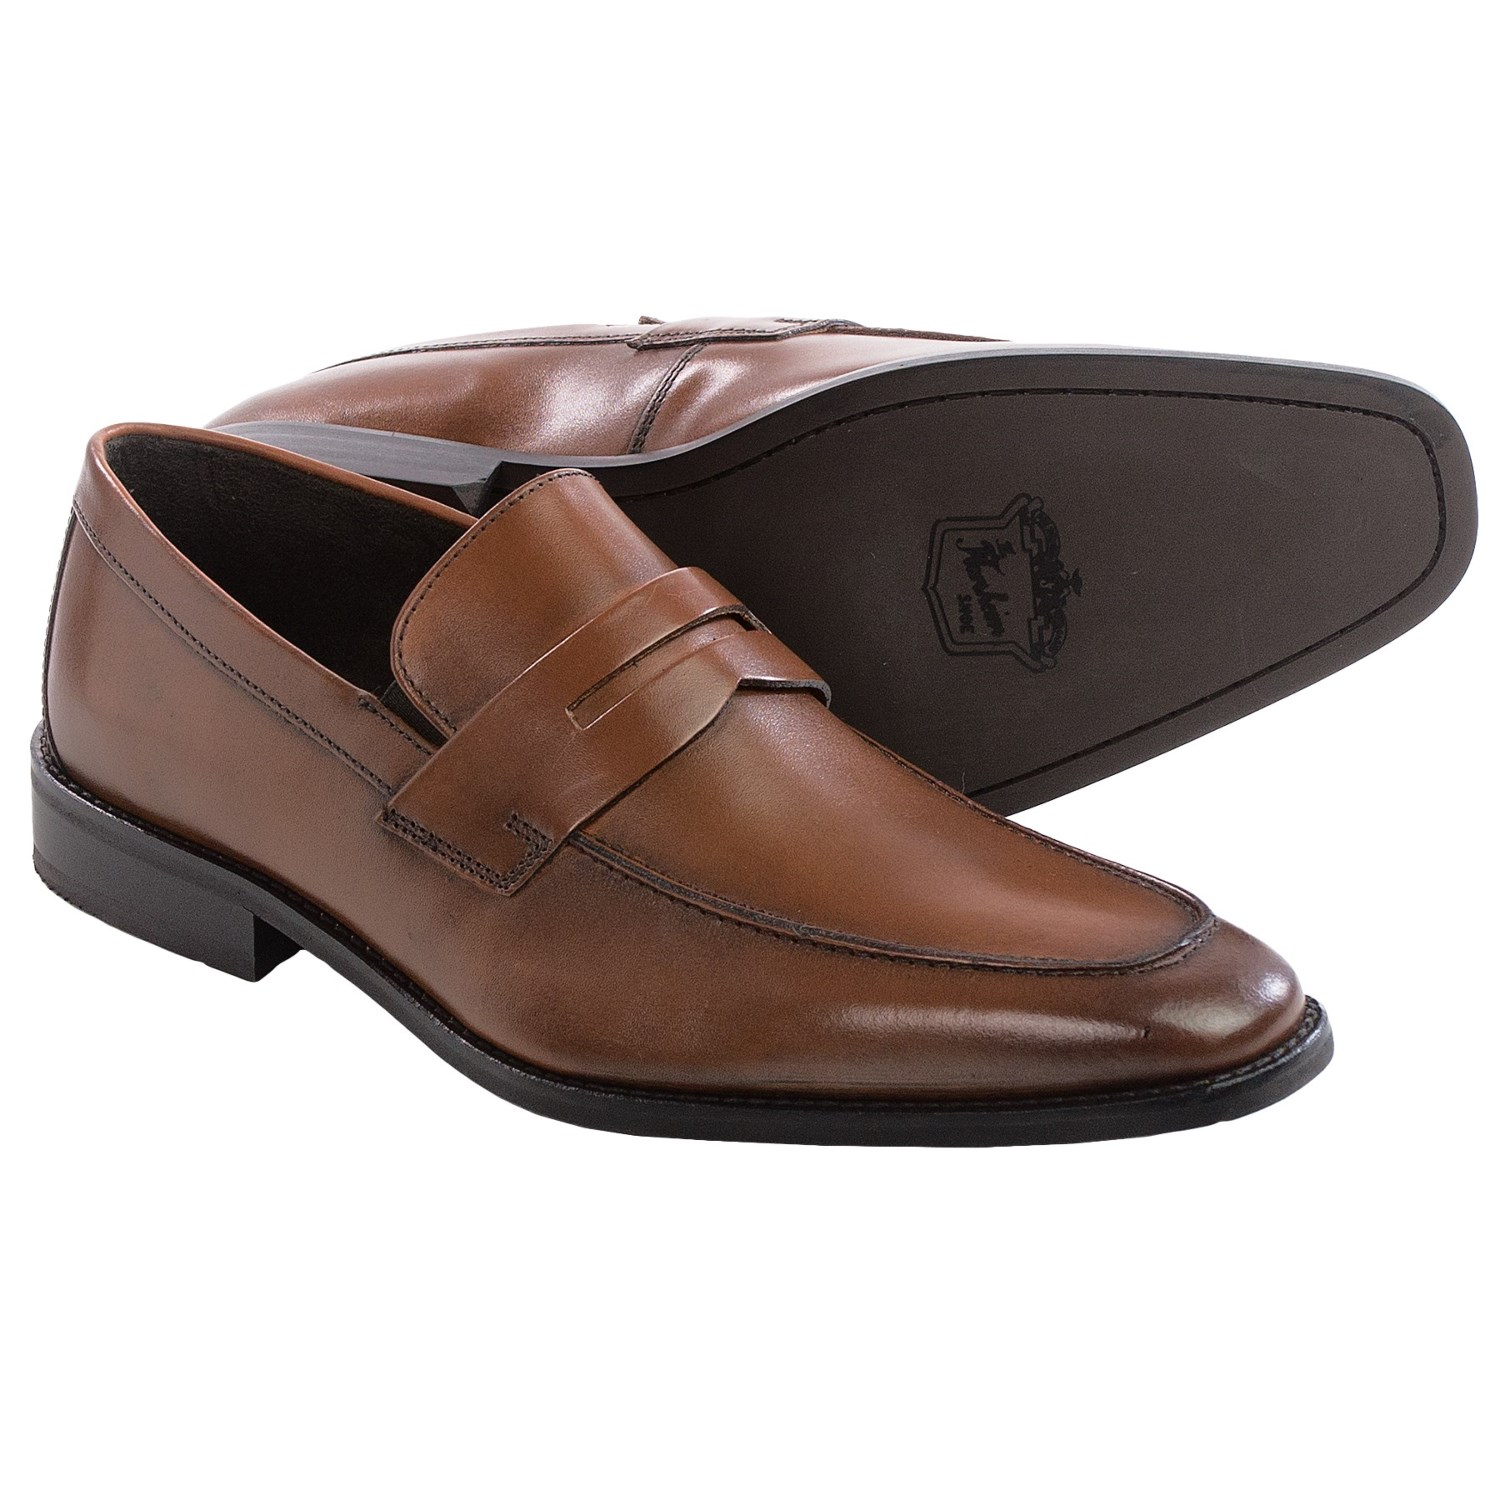 Florsheim paladino penny loafers for men save 41